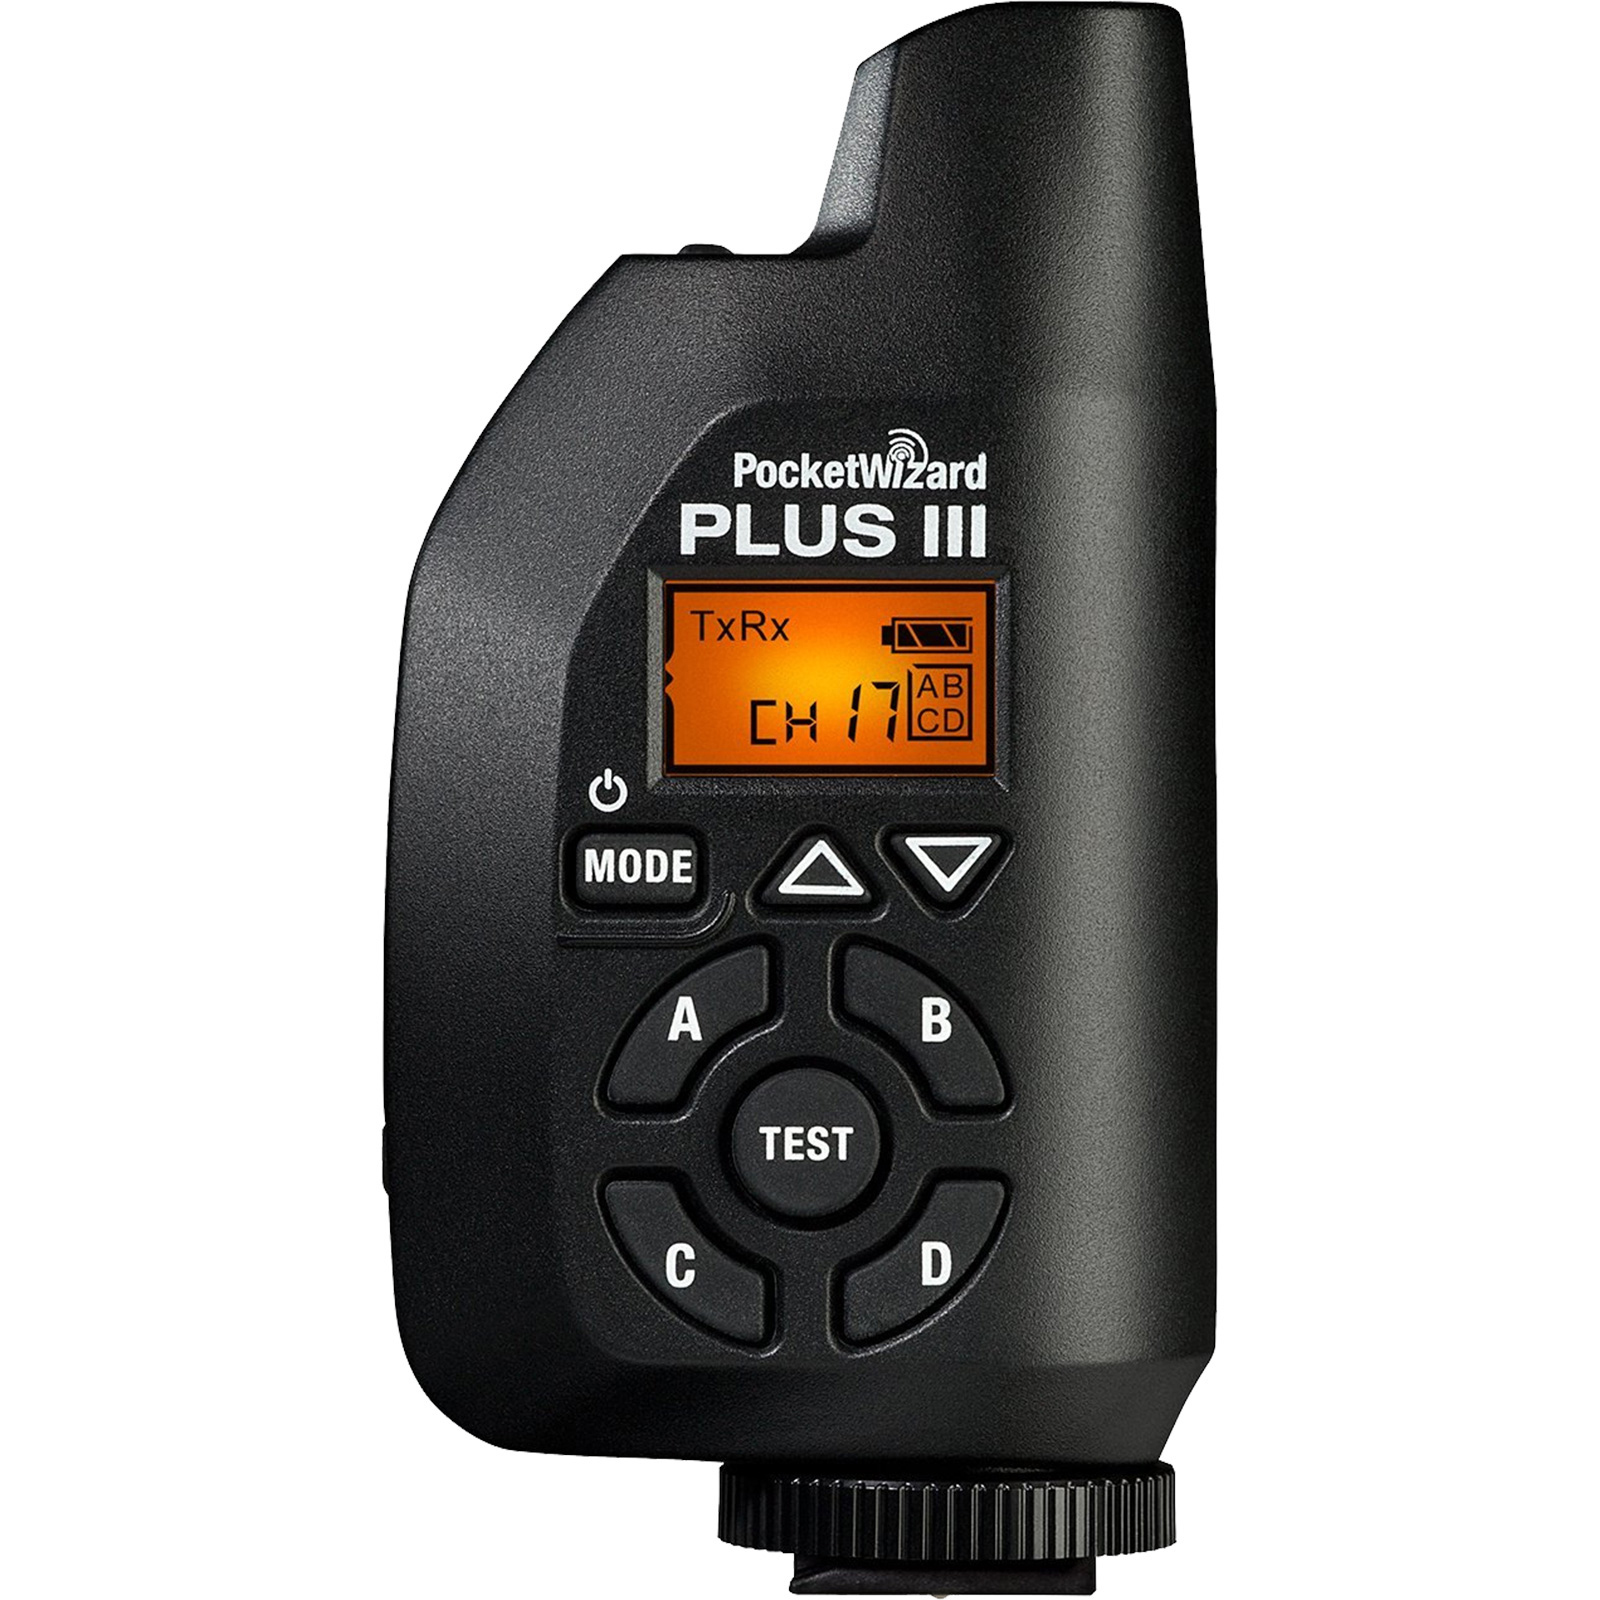 PocketWizard Plus III Wireless Transceiver Reliably Trigger Lights and/or Cameras up to 1600 Feet